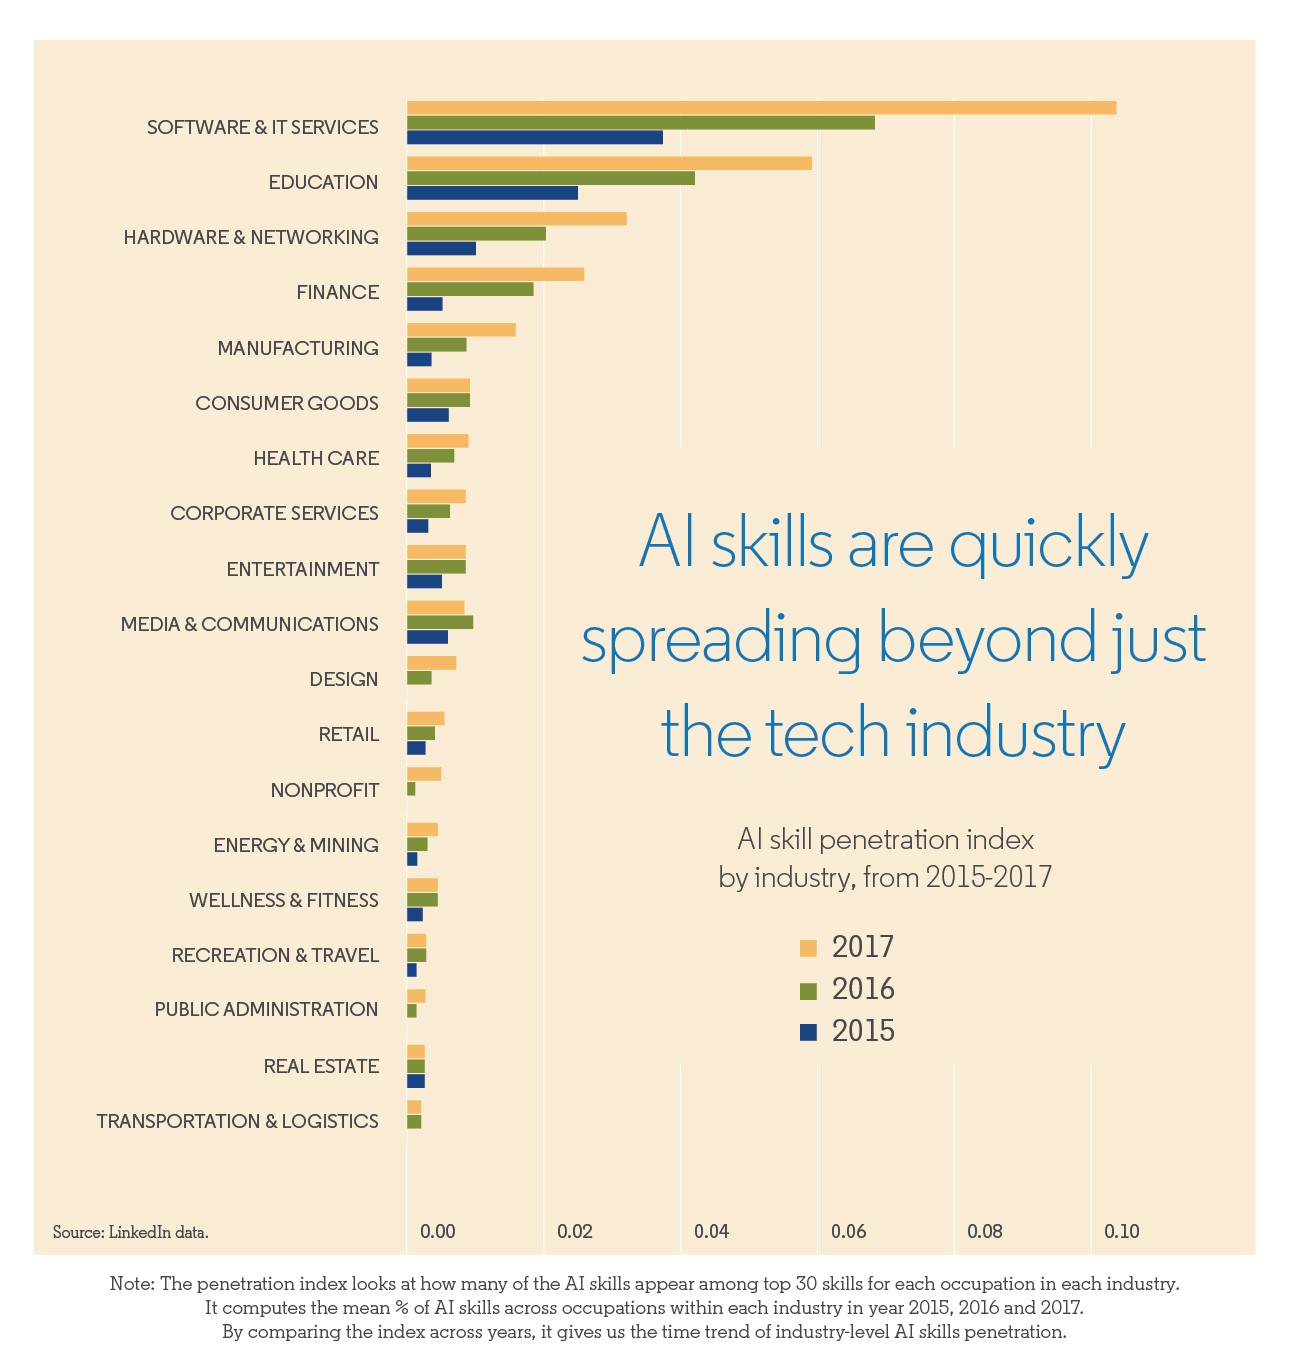 AI skills are quickly spreading beyond just the tech industry